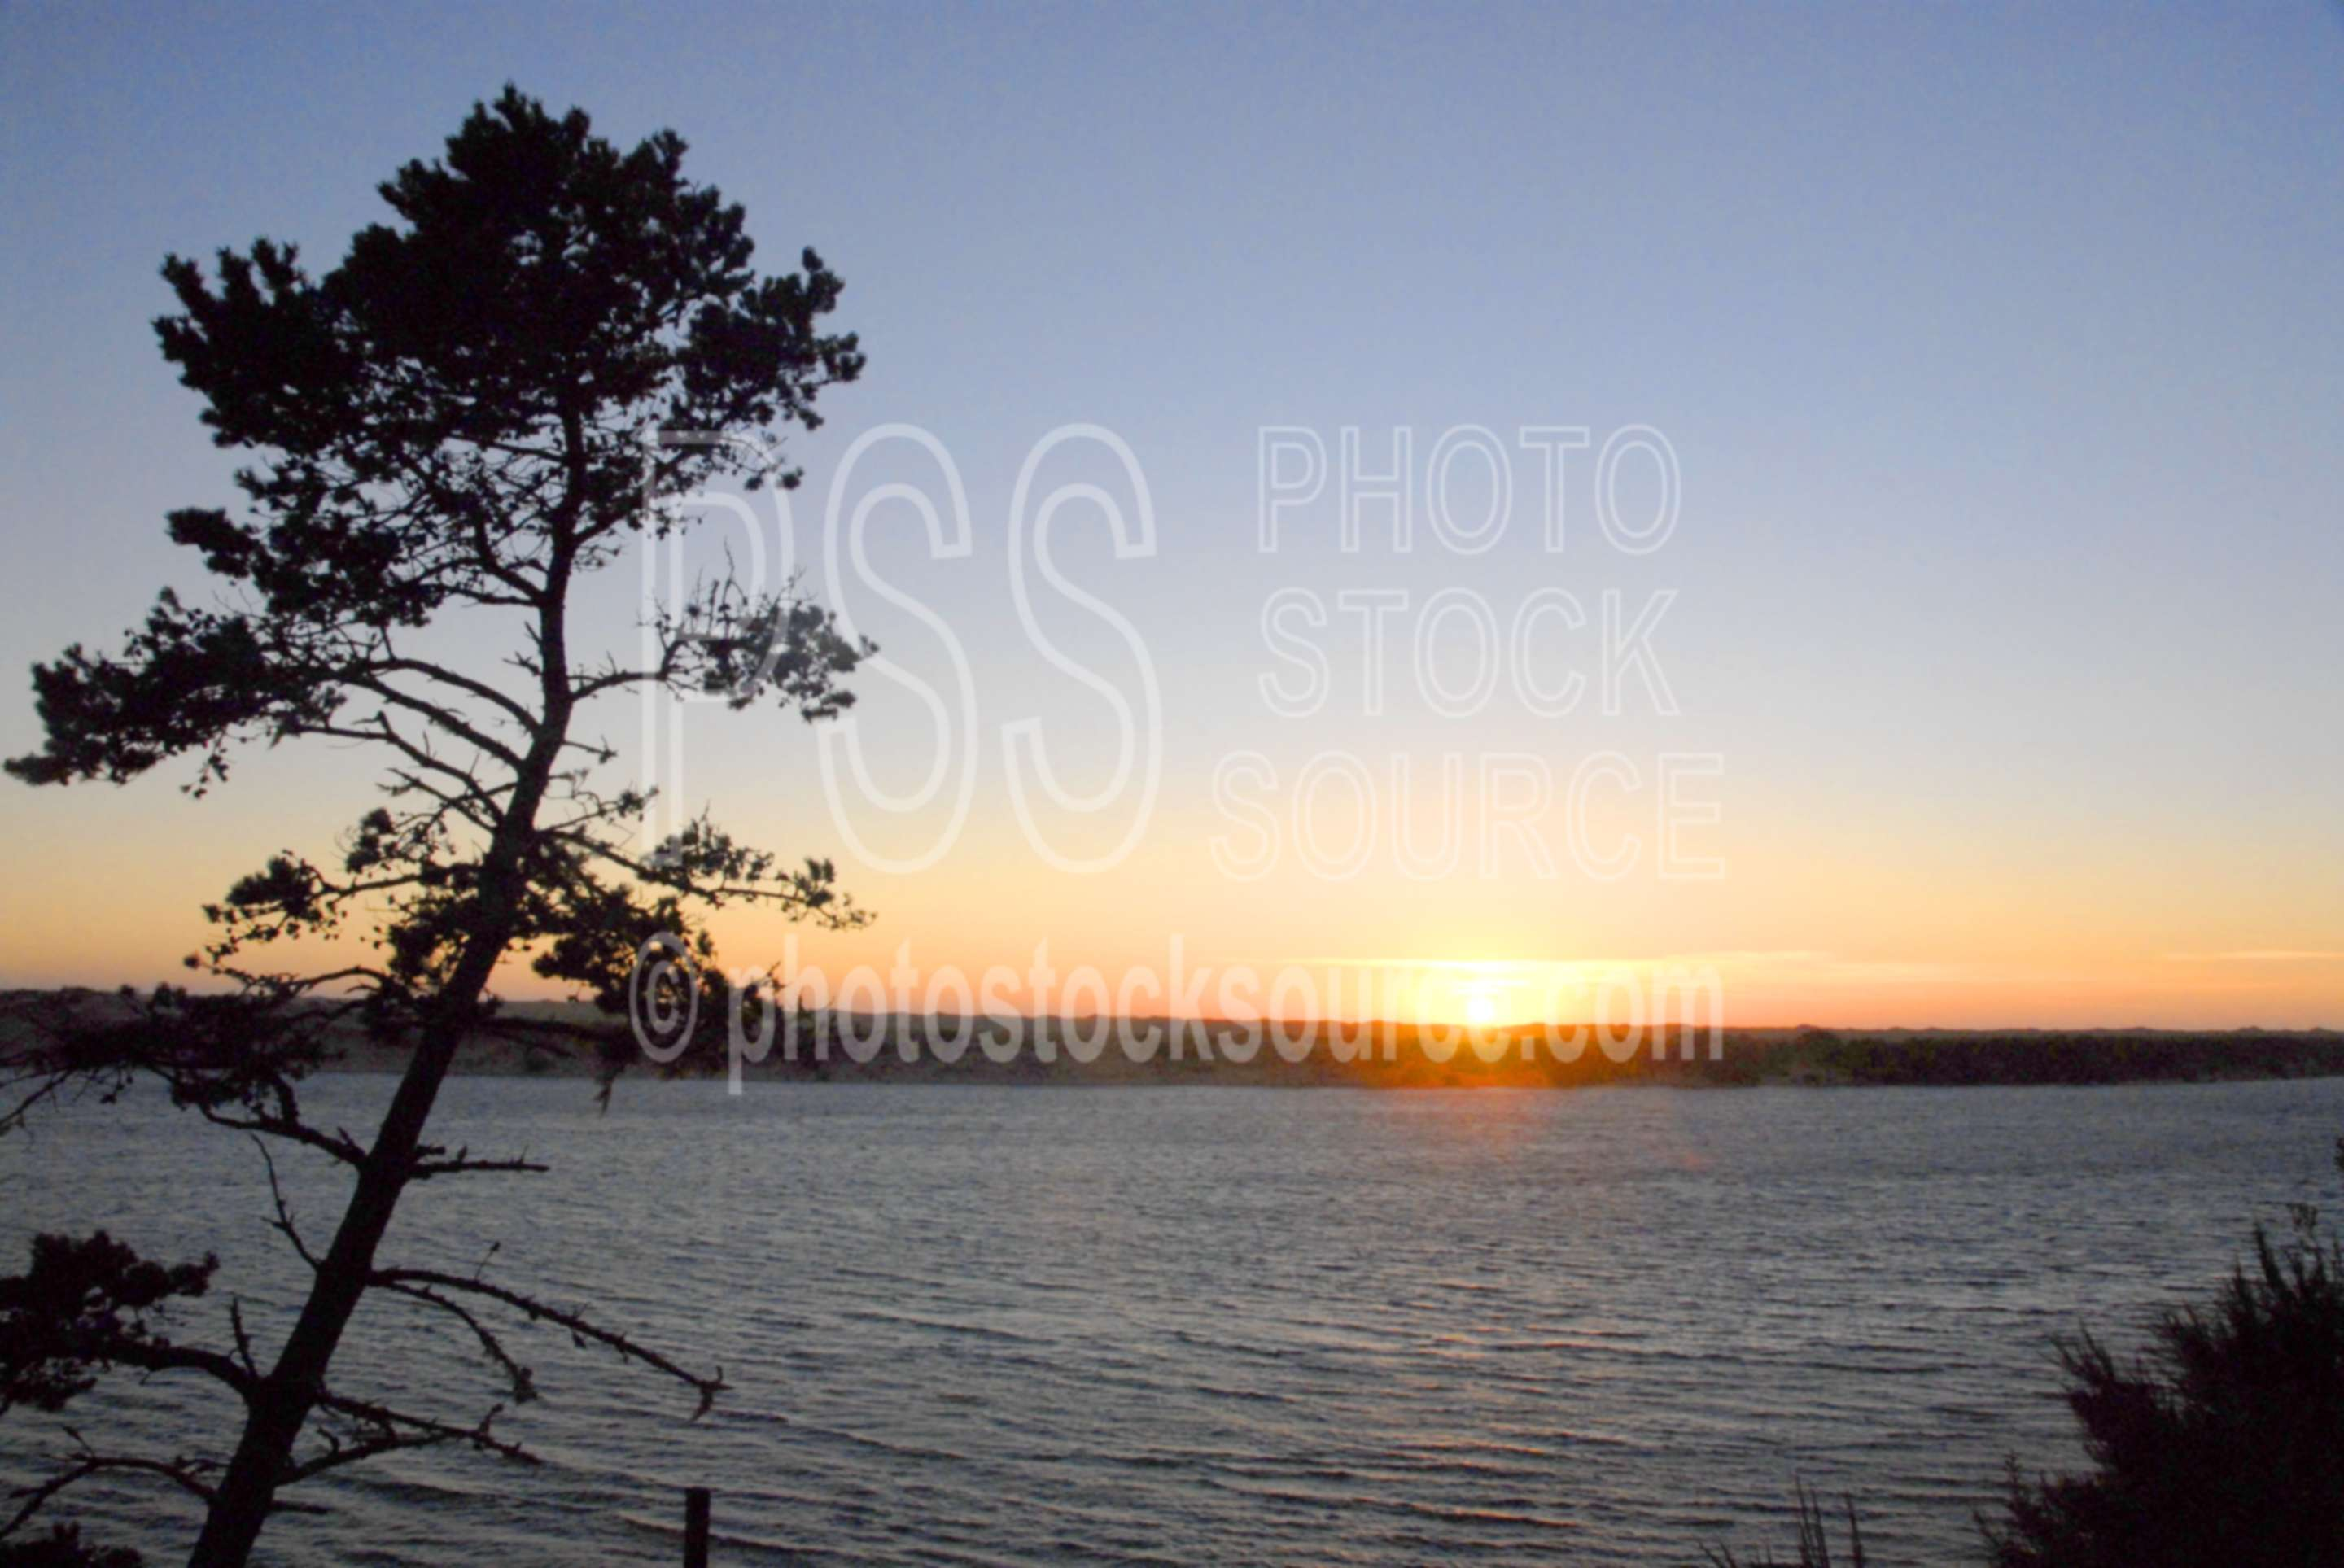 Siuslaw Sunset,river,siuslaw river